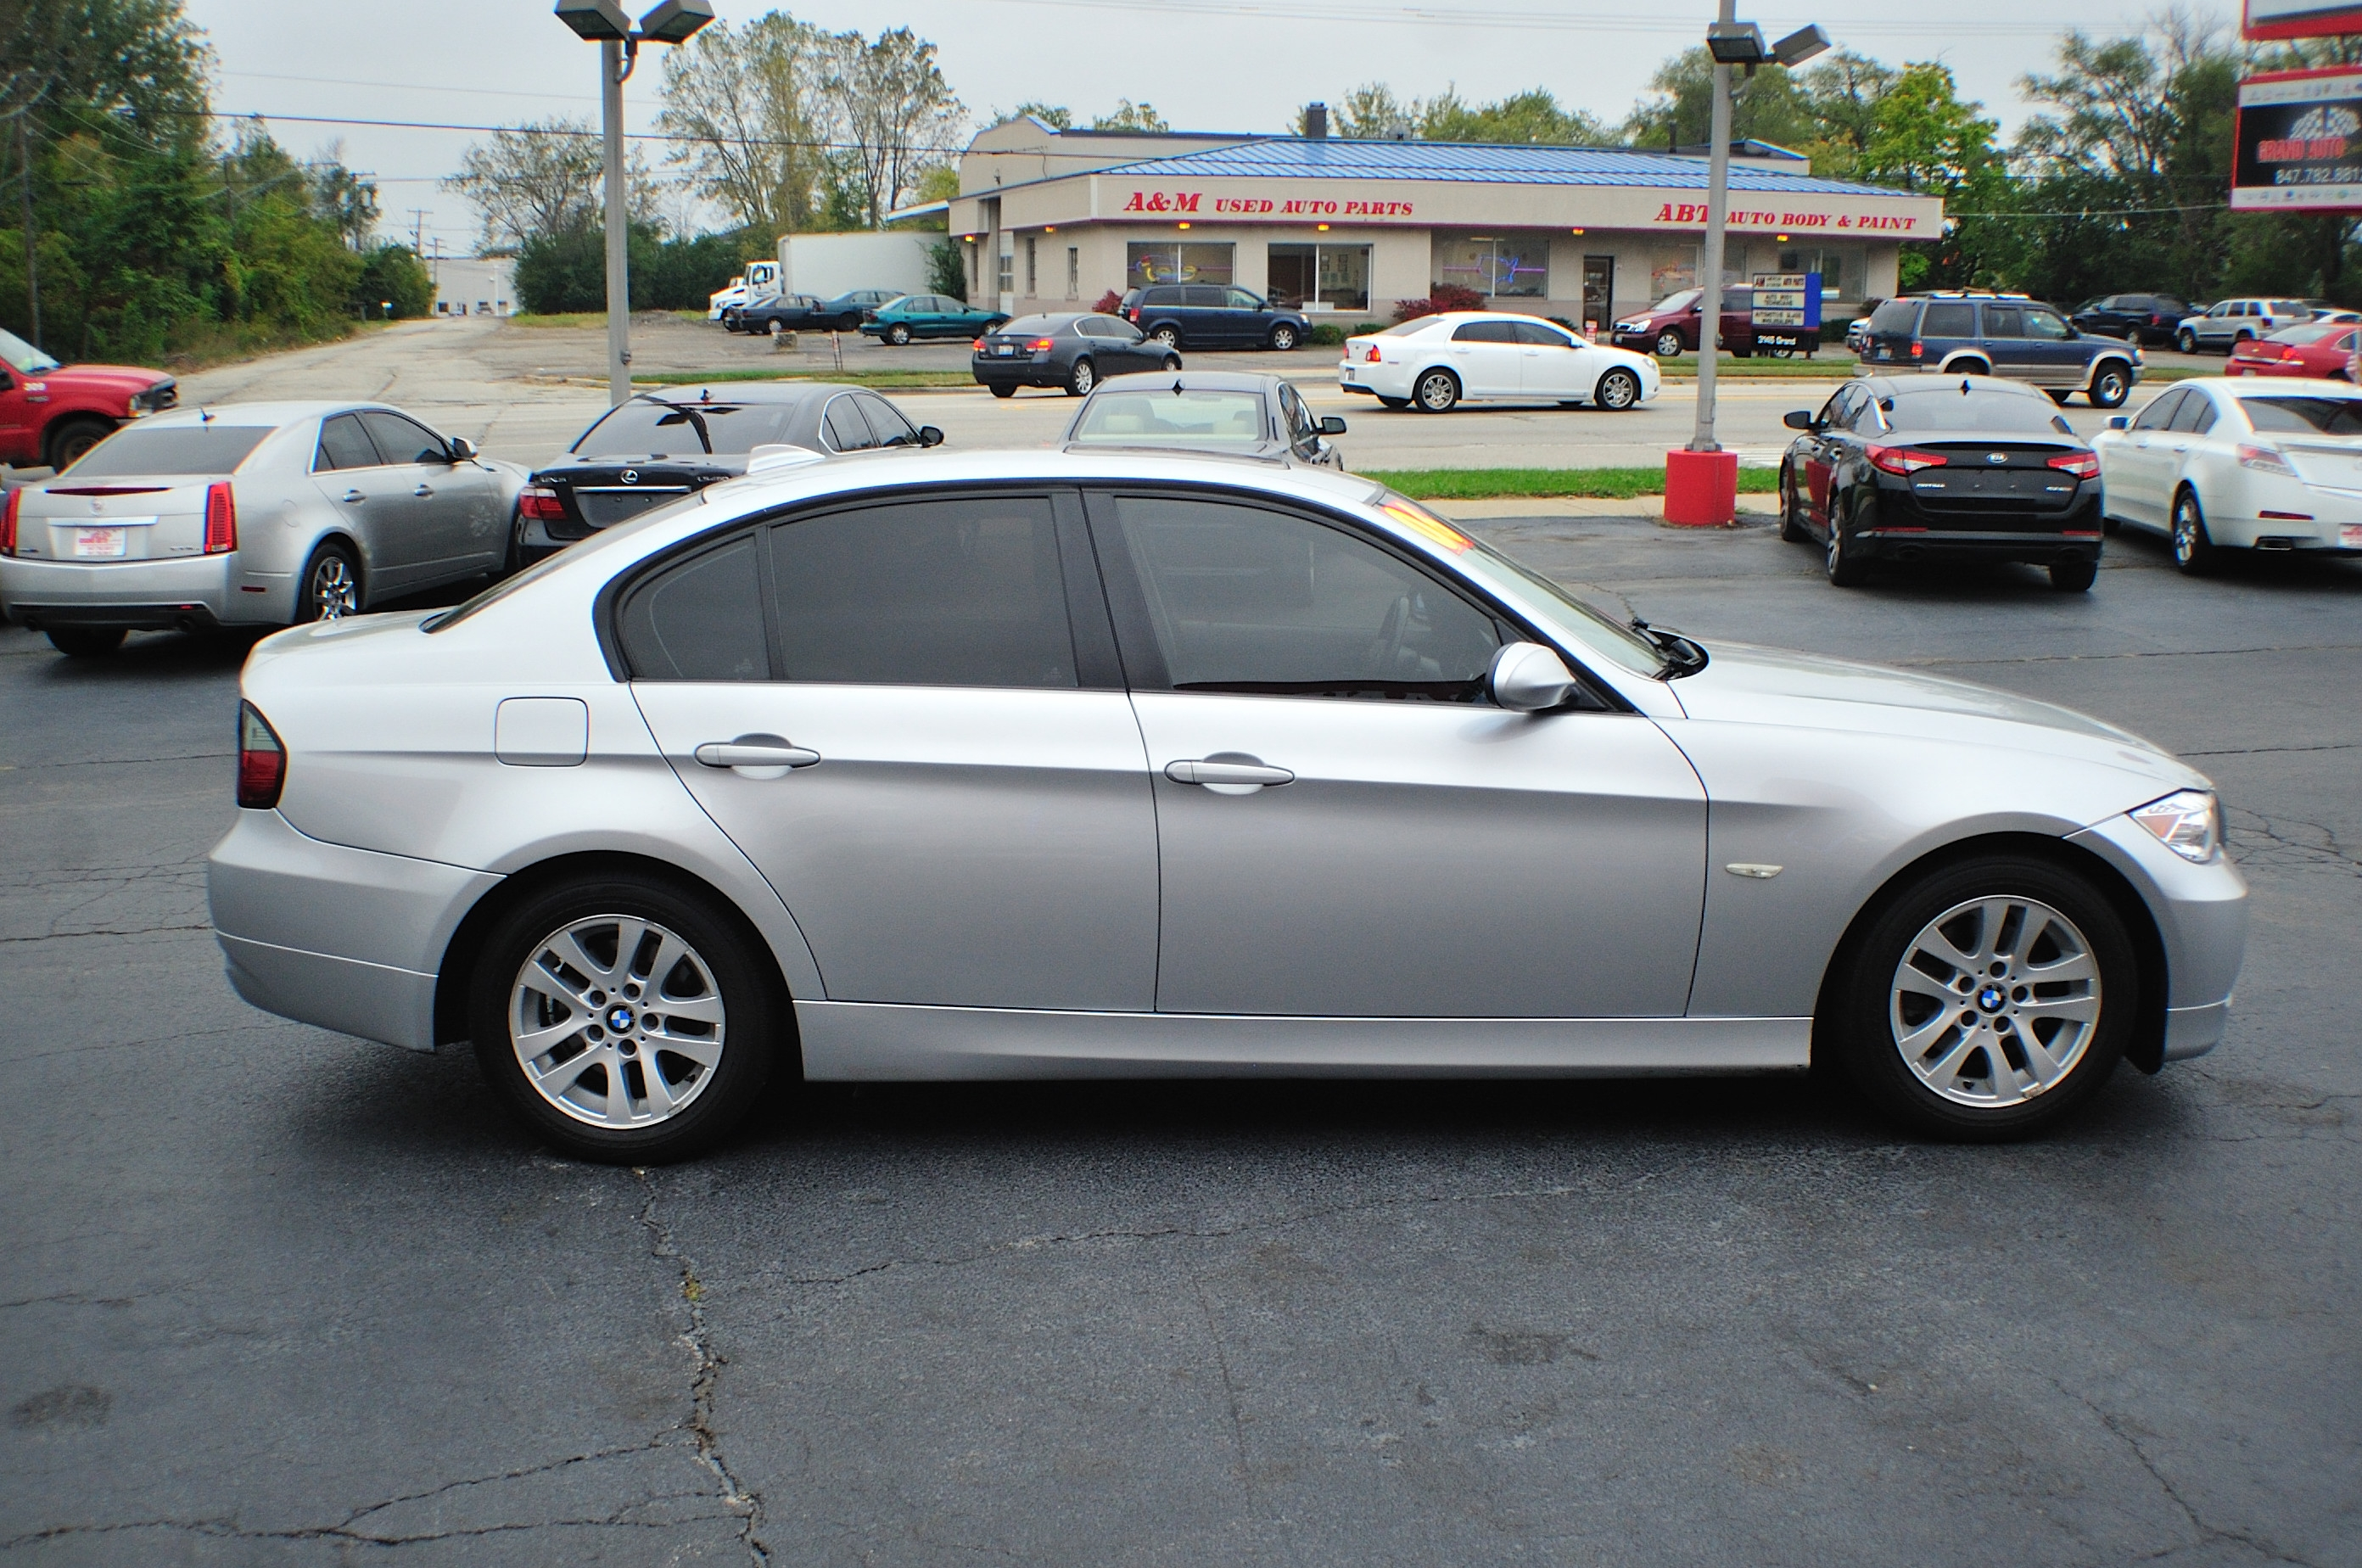 2006 bmw 325i silver used sport sedan car sale bannockburn barrington beach park